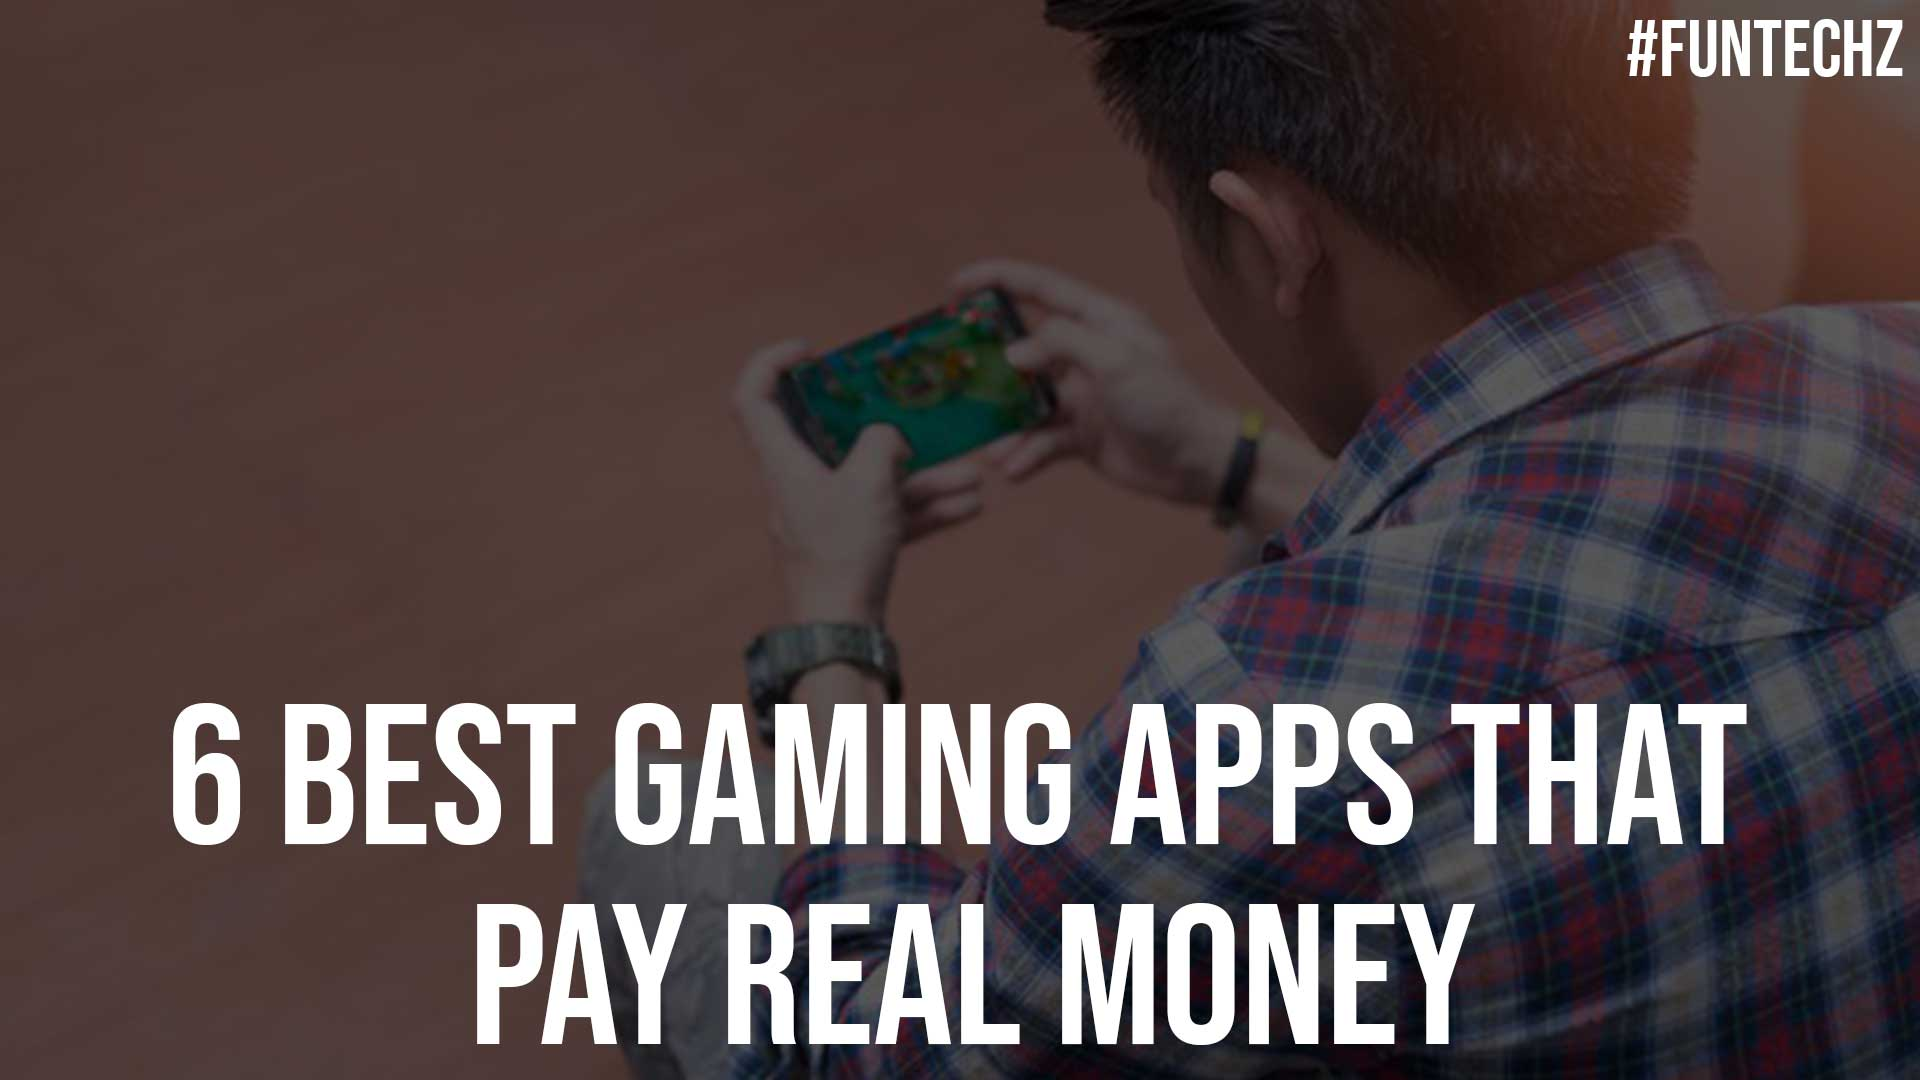 6 Best Gaming Apps That Pay Real Money